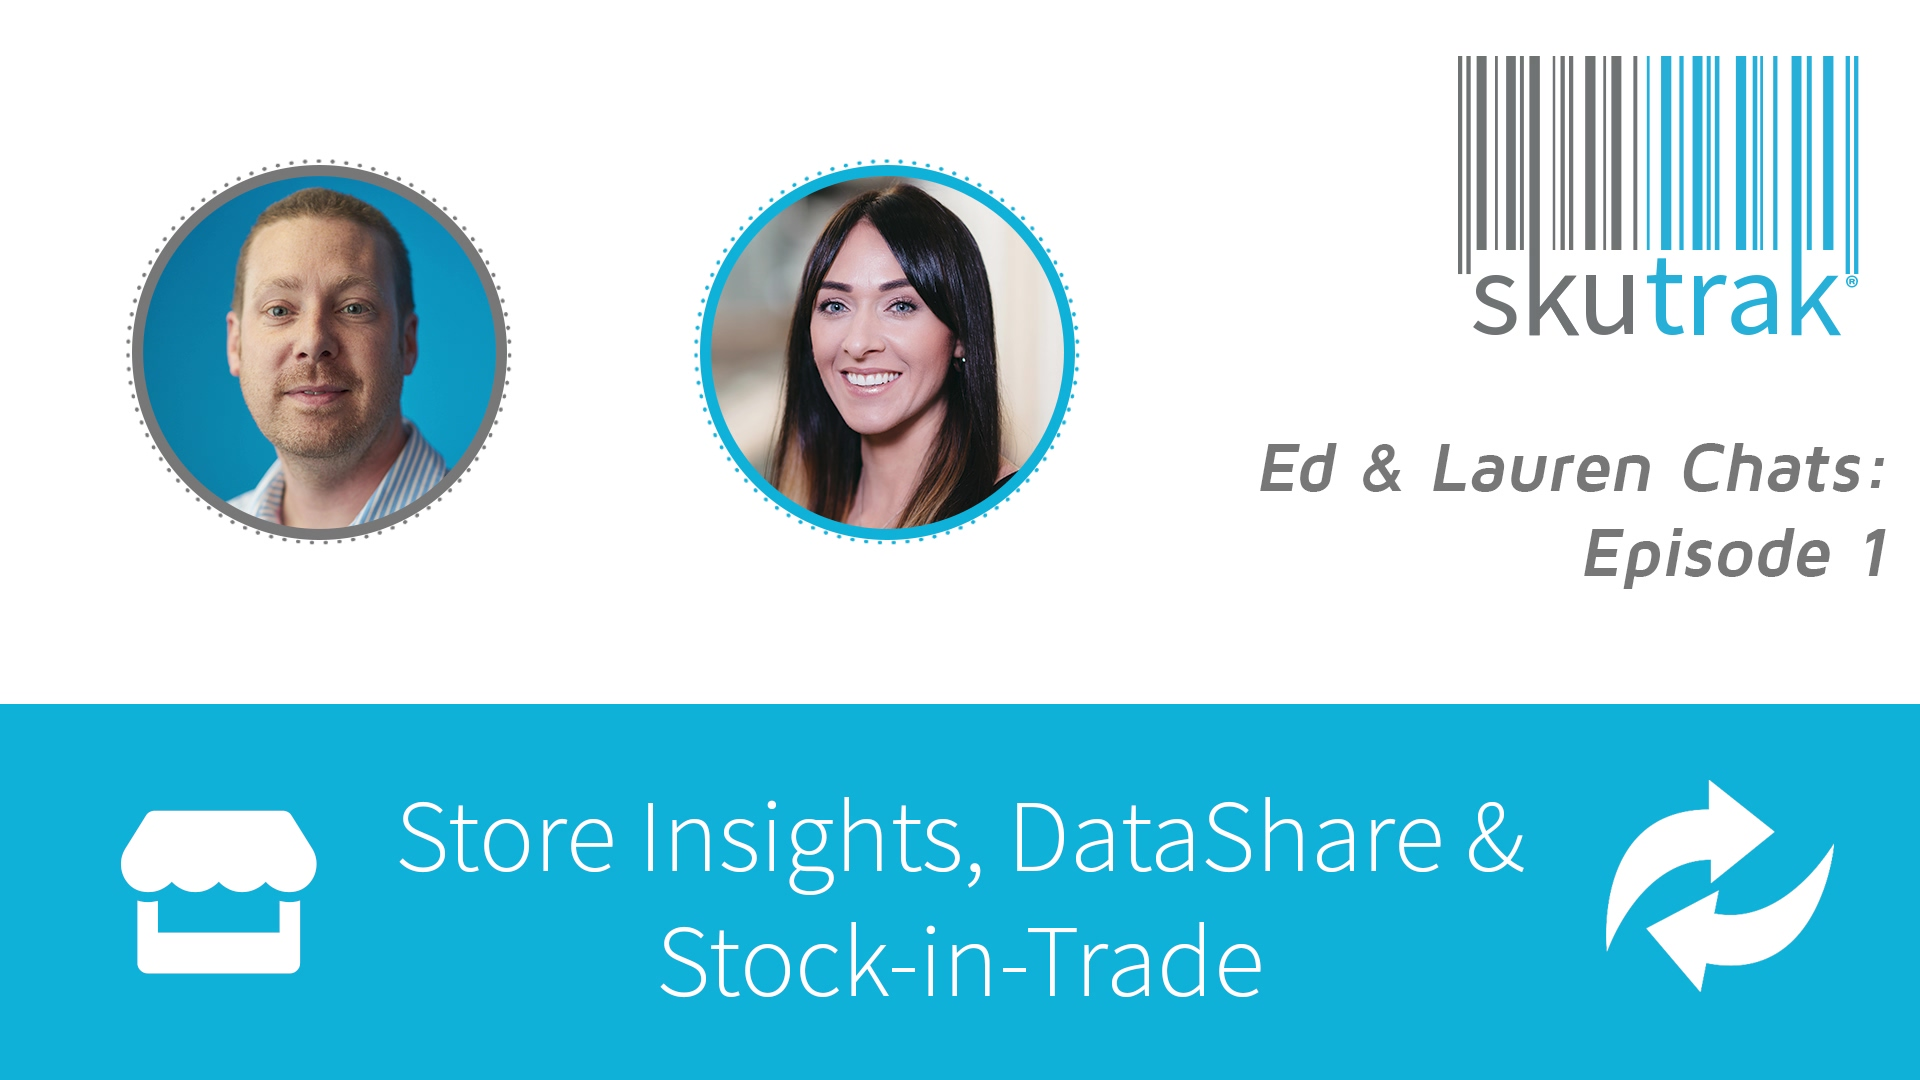 Podcast - Ed & Lauren - Store Insights, DataShare & Stock-in-Trade